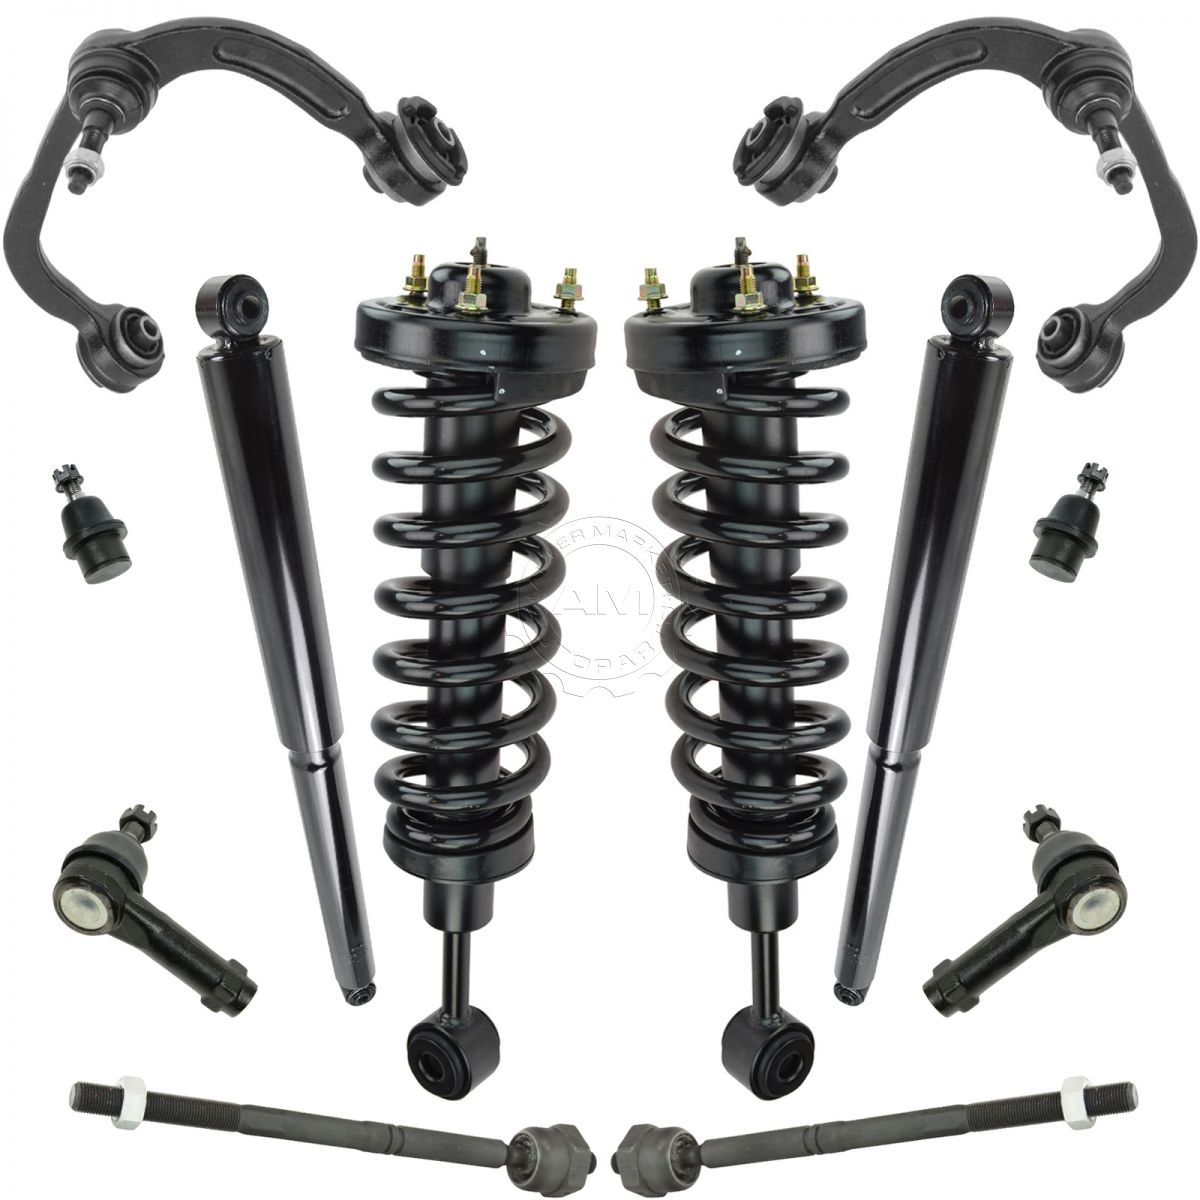 05 ford f150 4x4 coil spring installation on strut